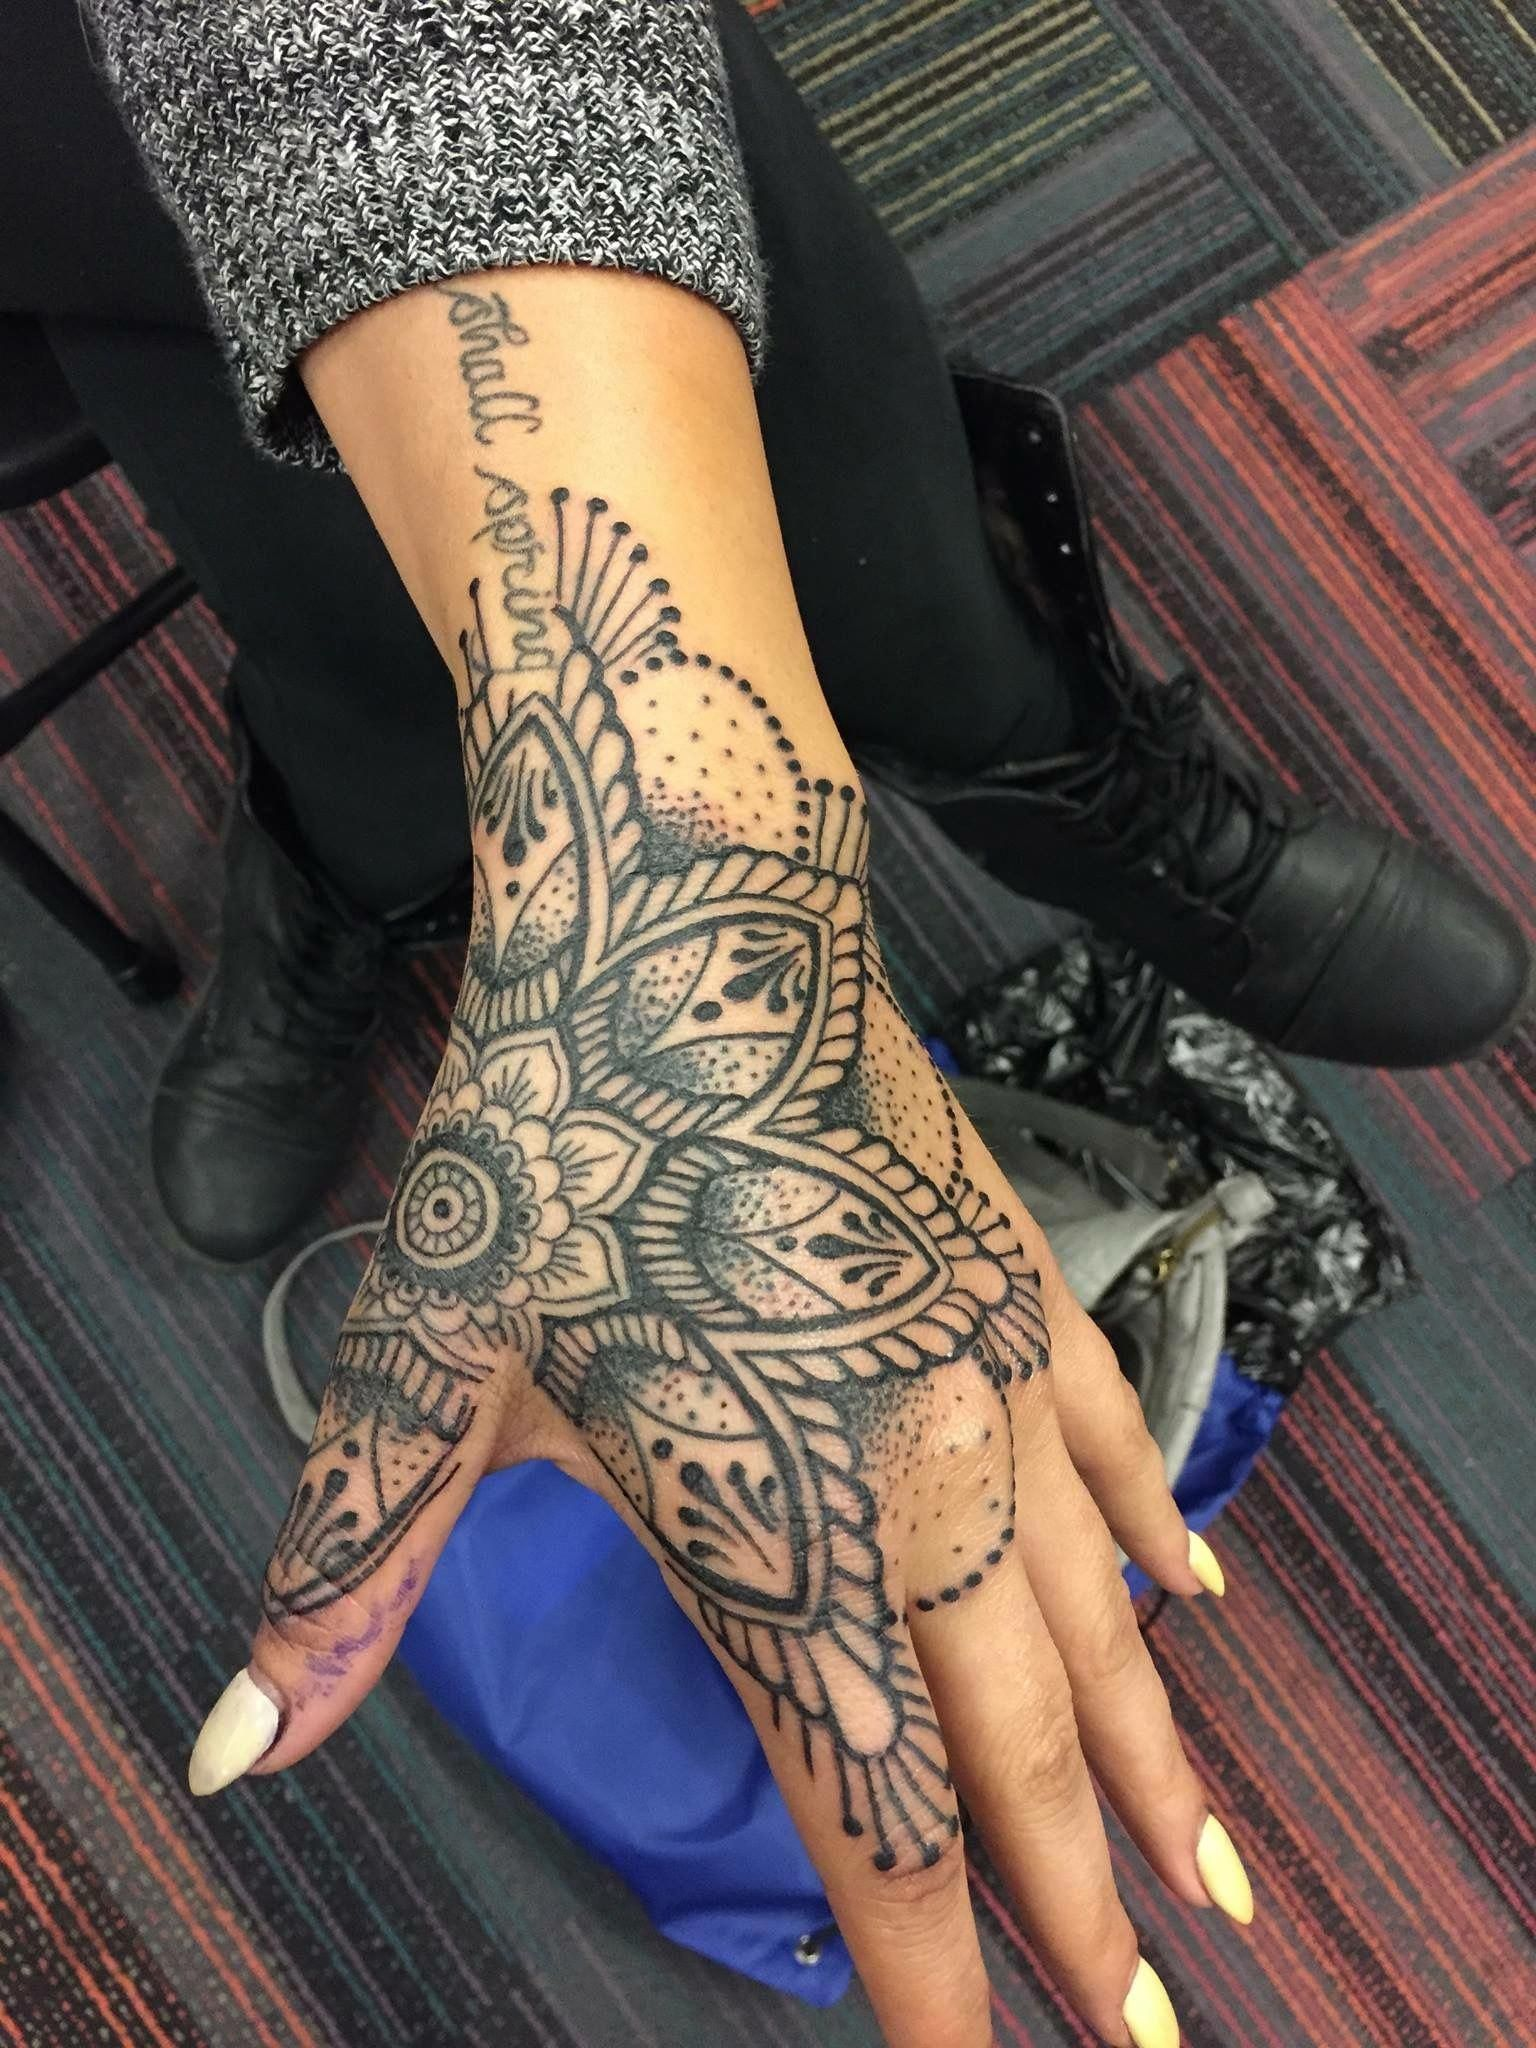 Mandala Arm Tattoo Mandalatattoo With Images Mandala Hand Tattoos Hand Tattoos For Women Tattoos